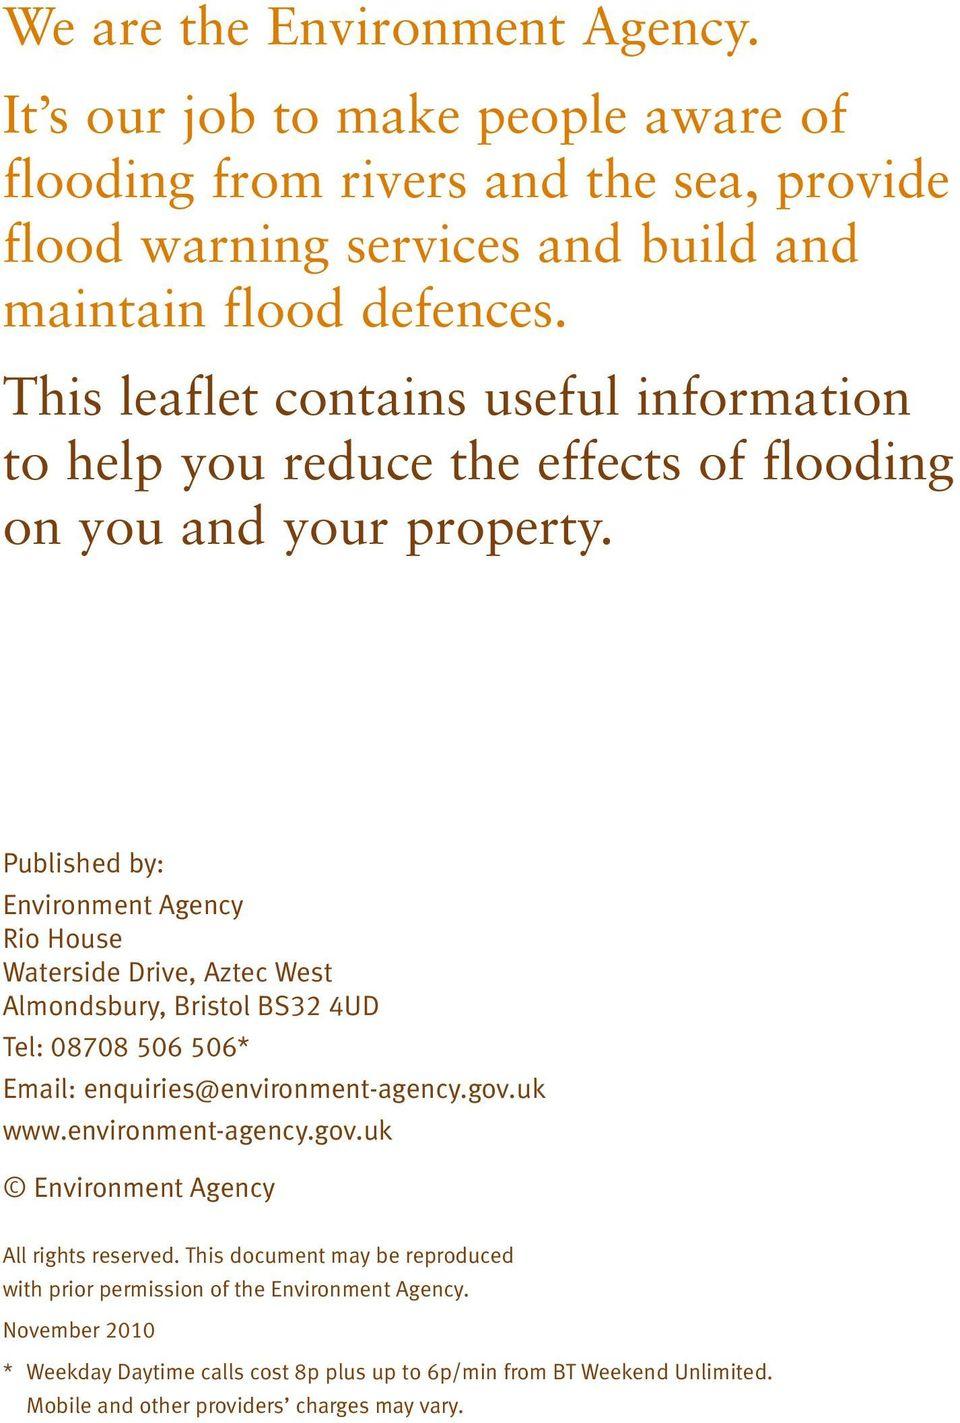 Published by: Environment Agency Rio House Waterside Drive, Aztec West Almondsbury, Bristol BS32 4UD Tel: 08708 506 506* Email: enquiries@environment-agency.gov.uk www.